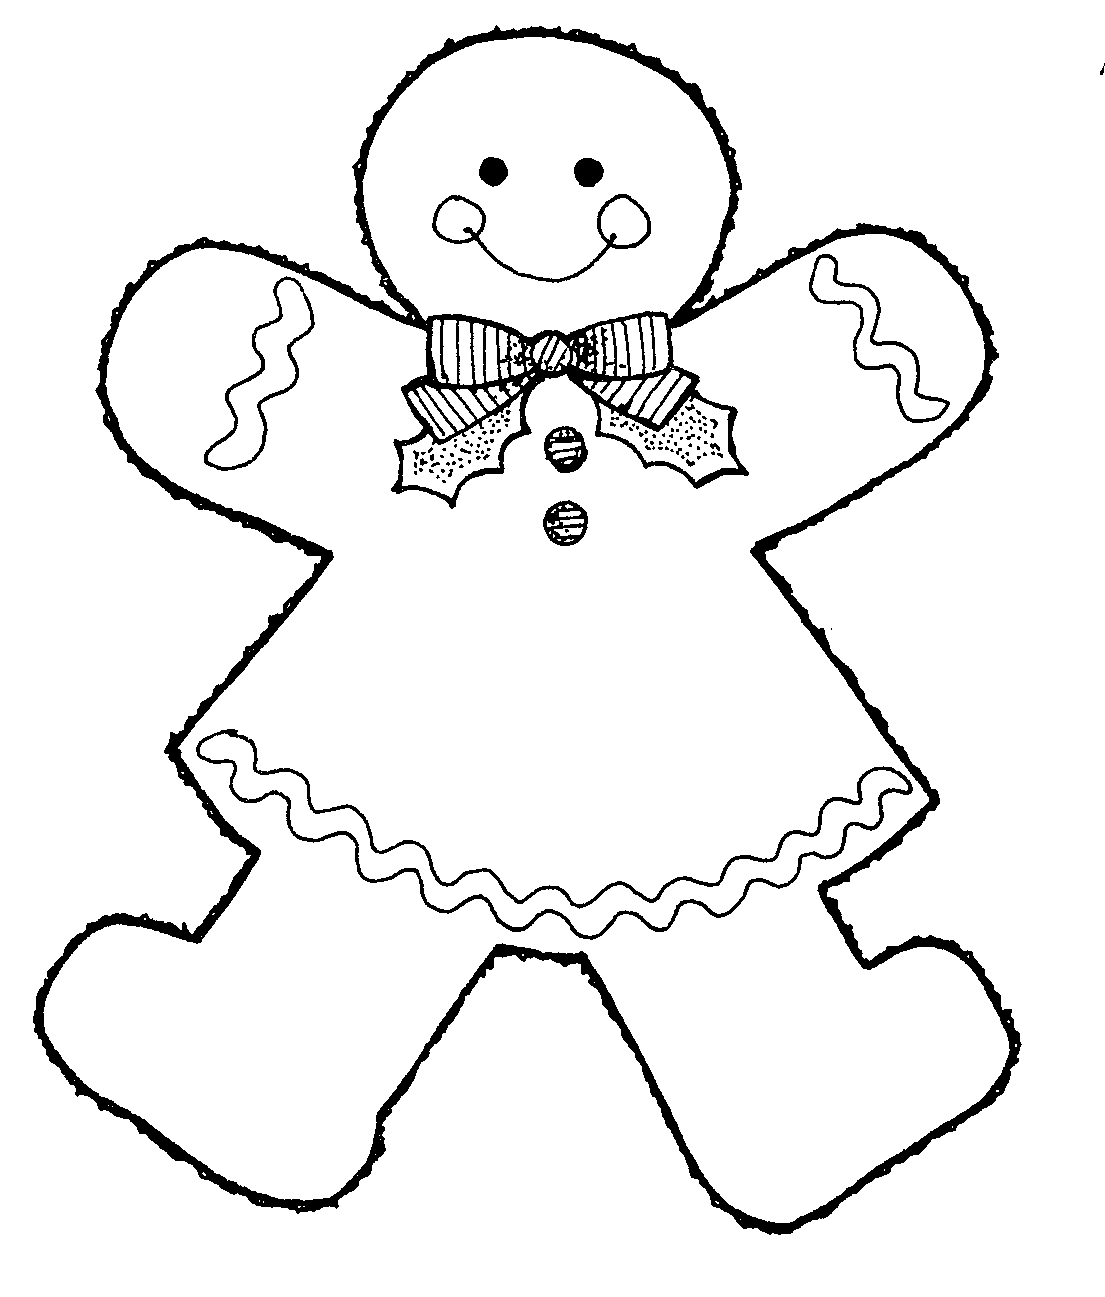 Worksheet. gingerbread man black and white clipart  Clipground